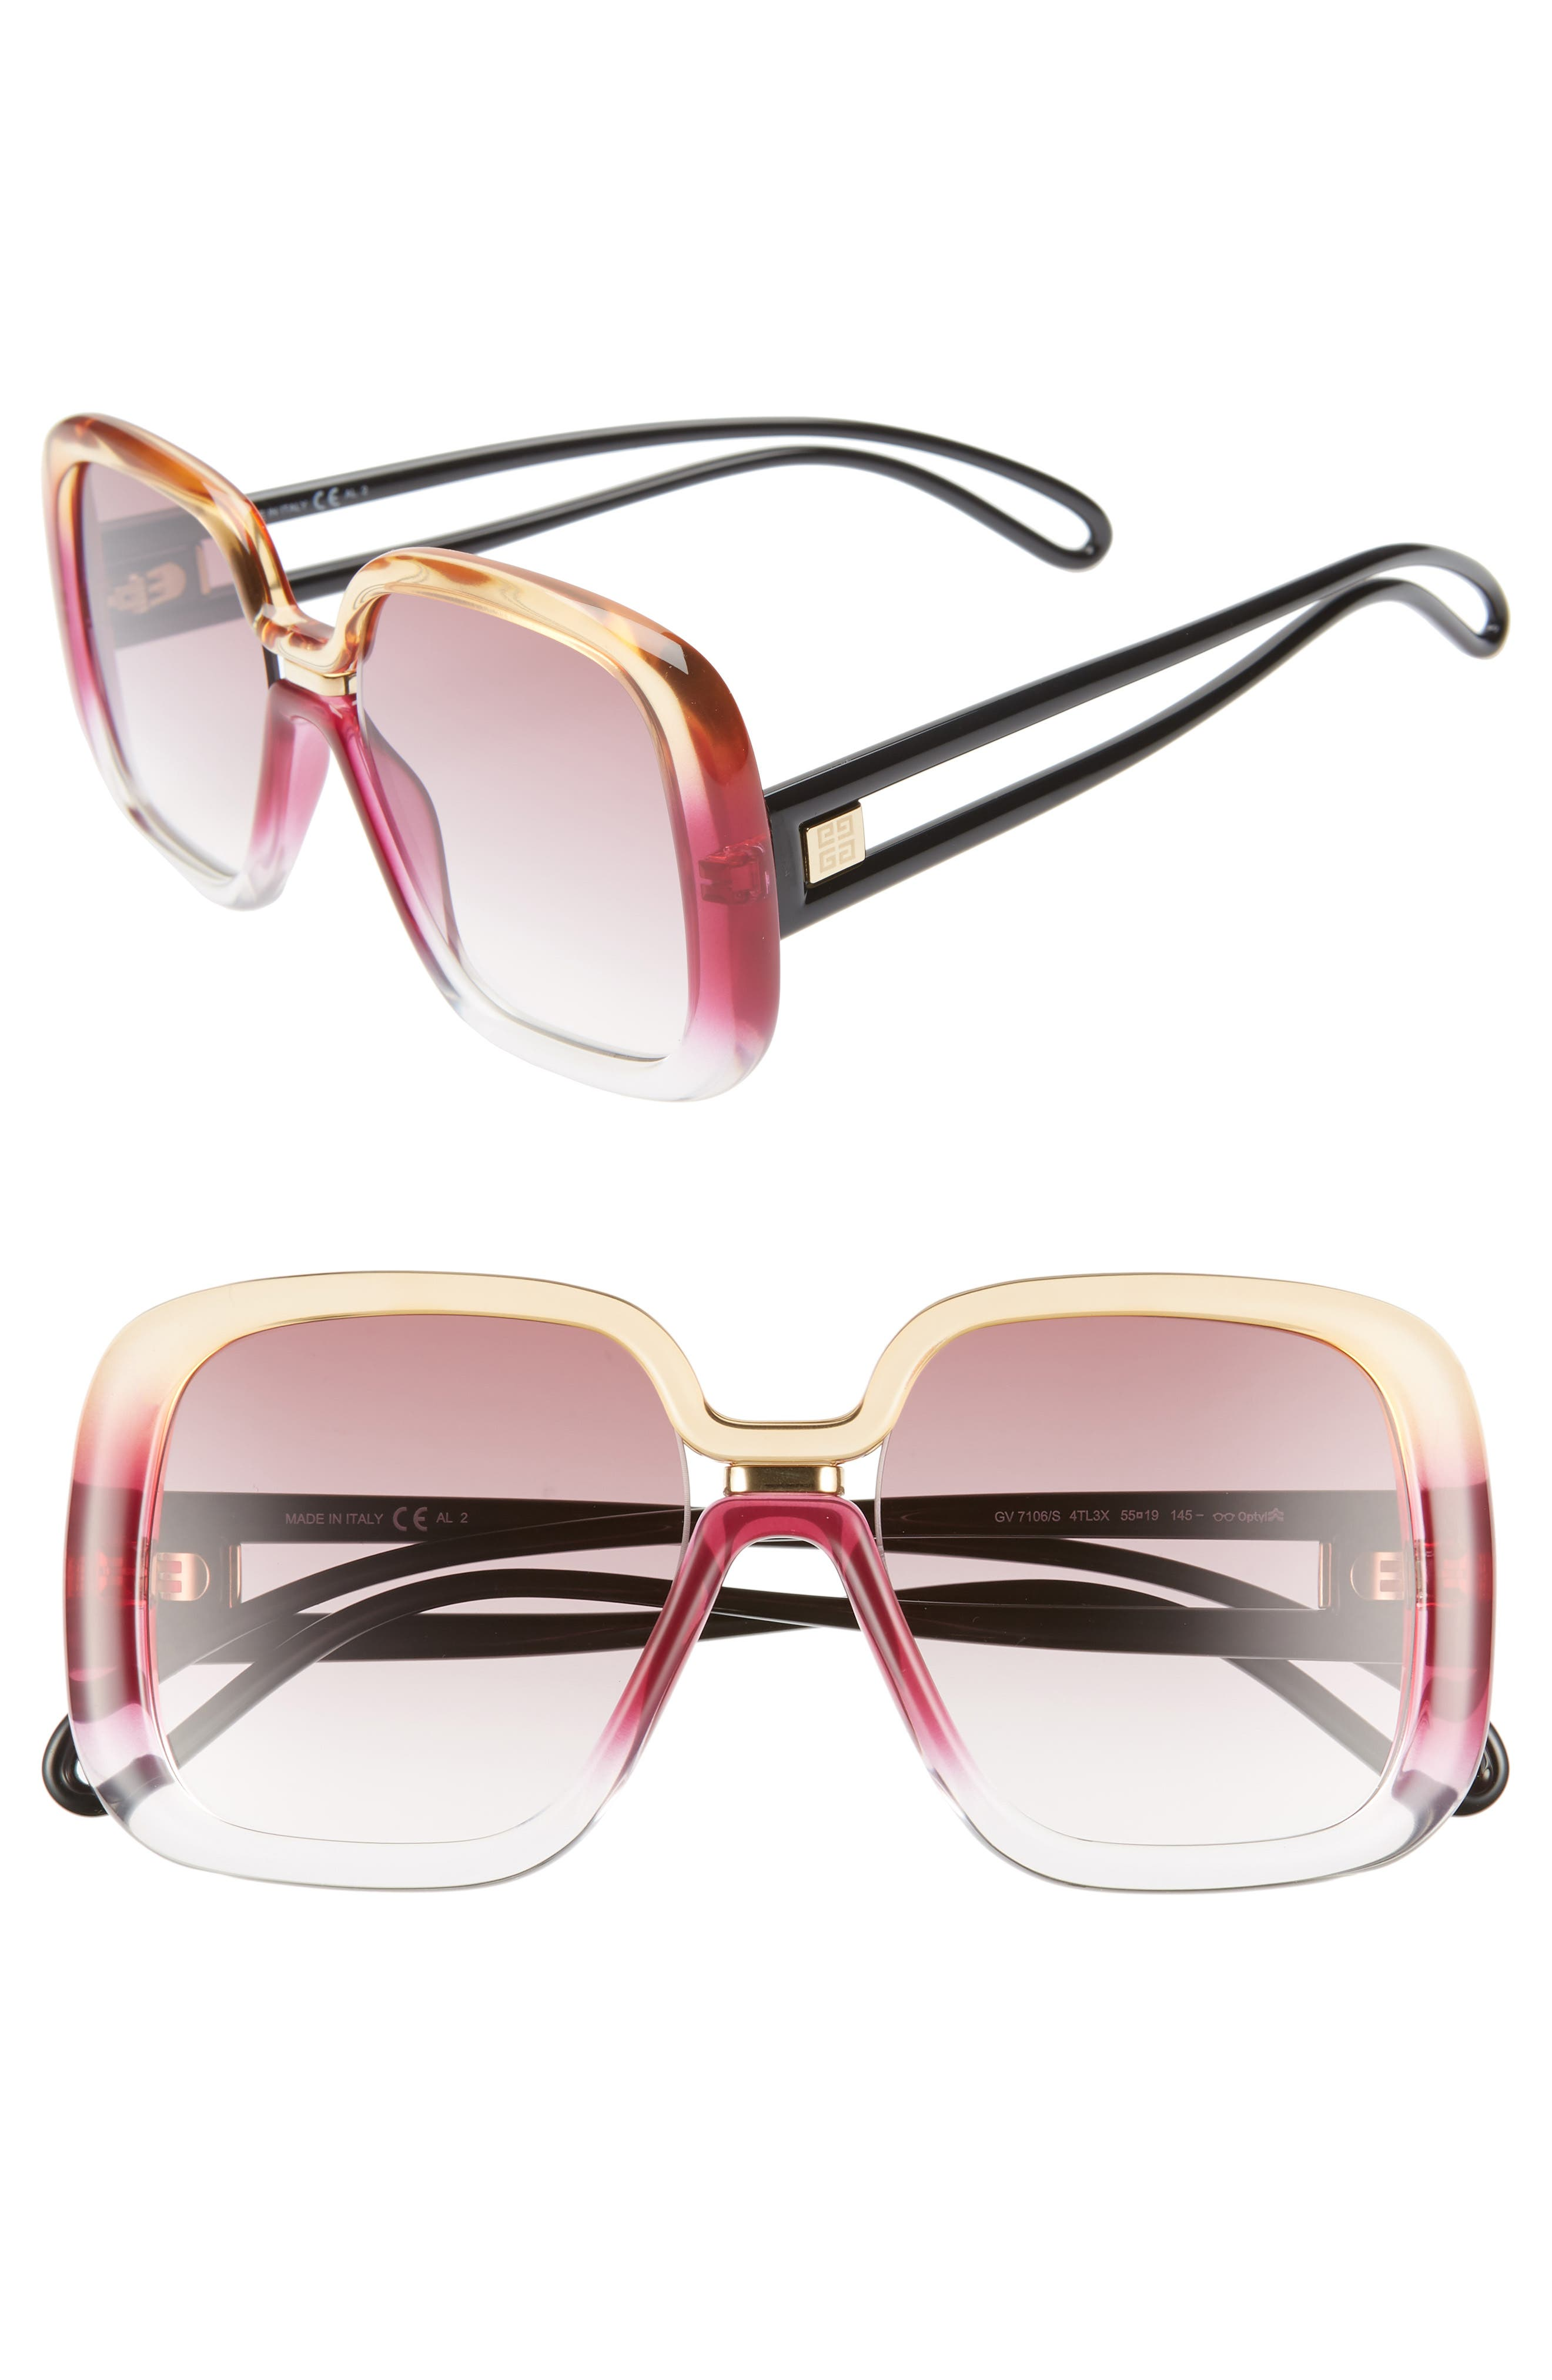 Givenchy 55Mm Square Sunglasses - Fuchsia Peach